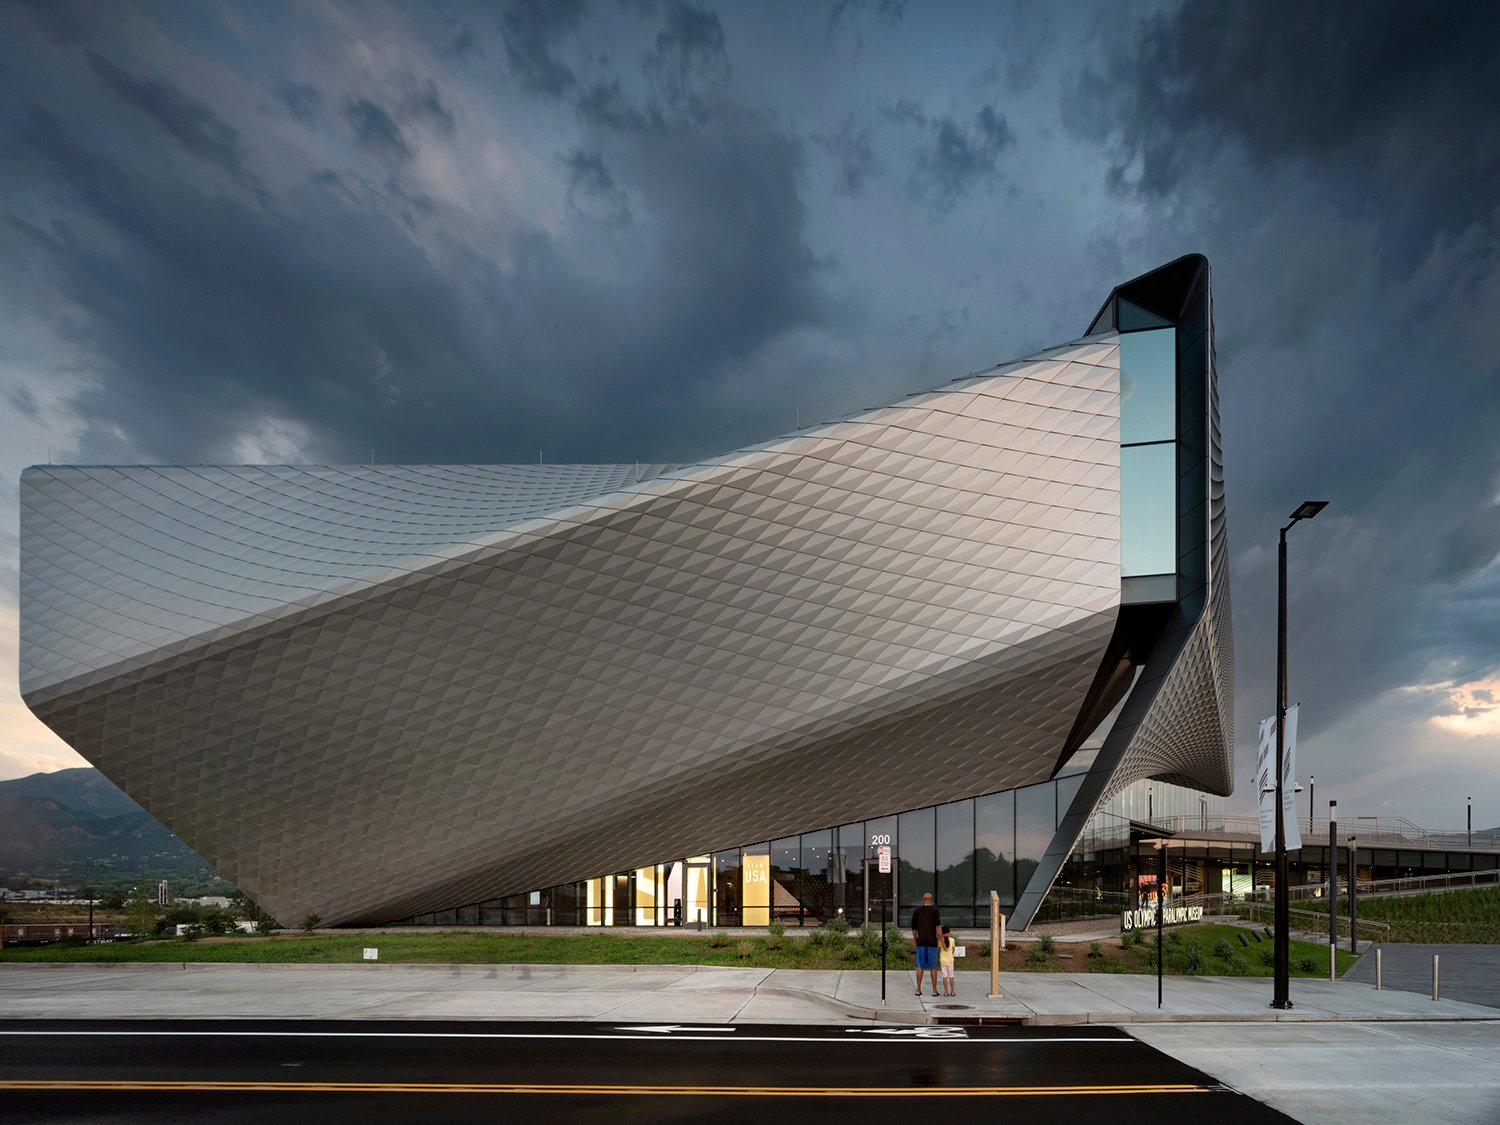 South Elevation of United States Olympic & Paralympic Museum Photo by Nic Lehoux